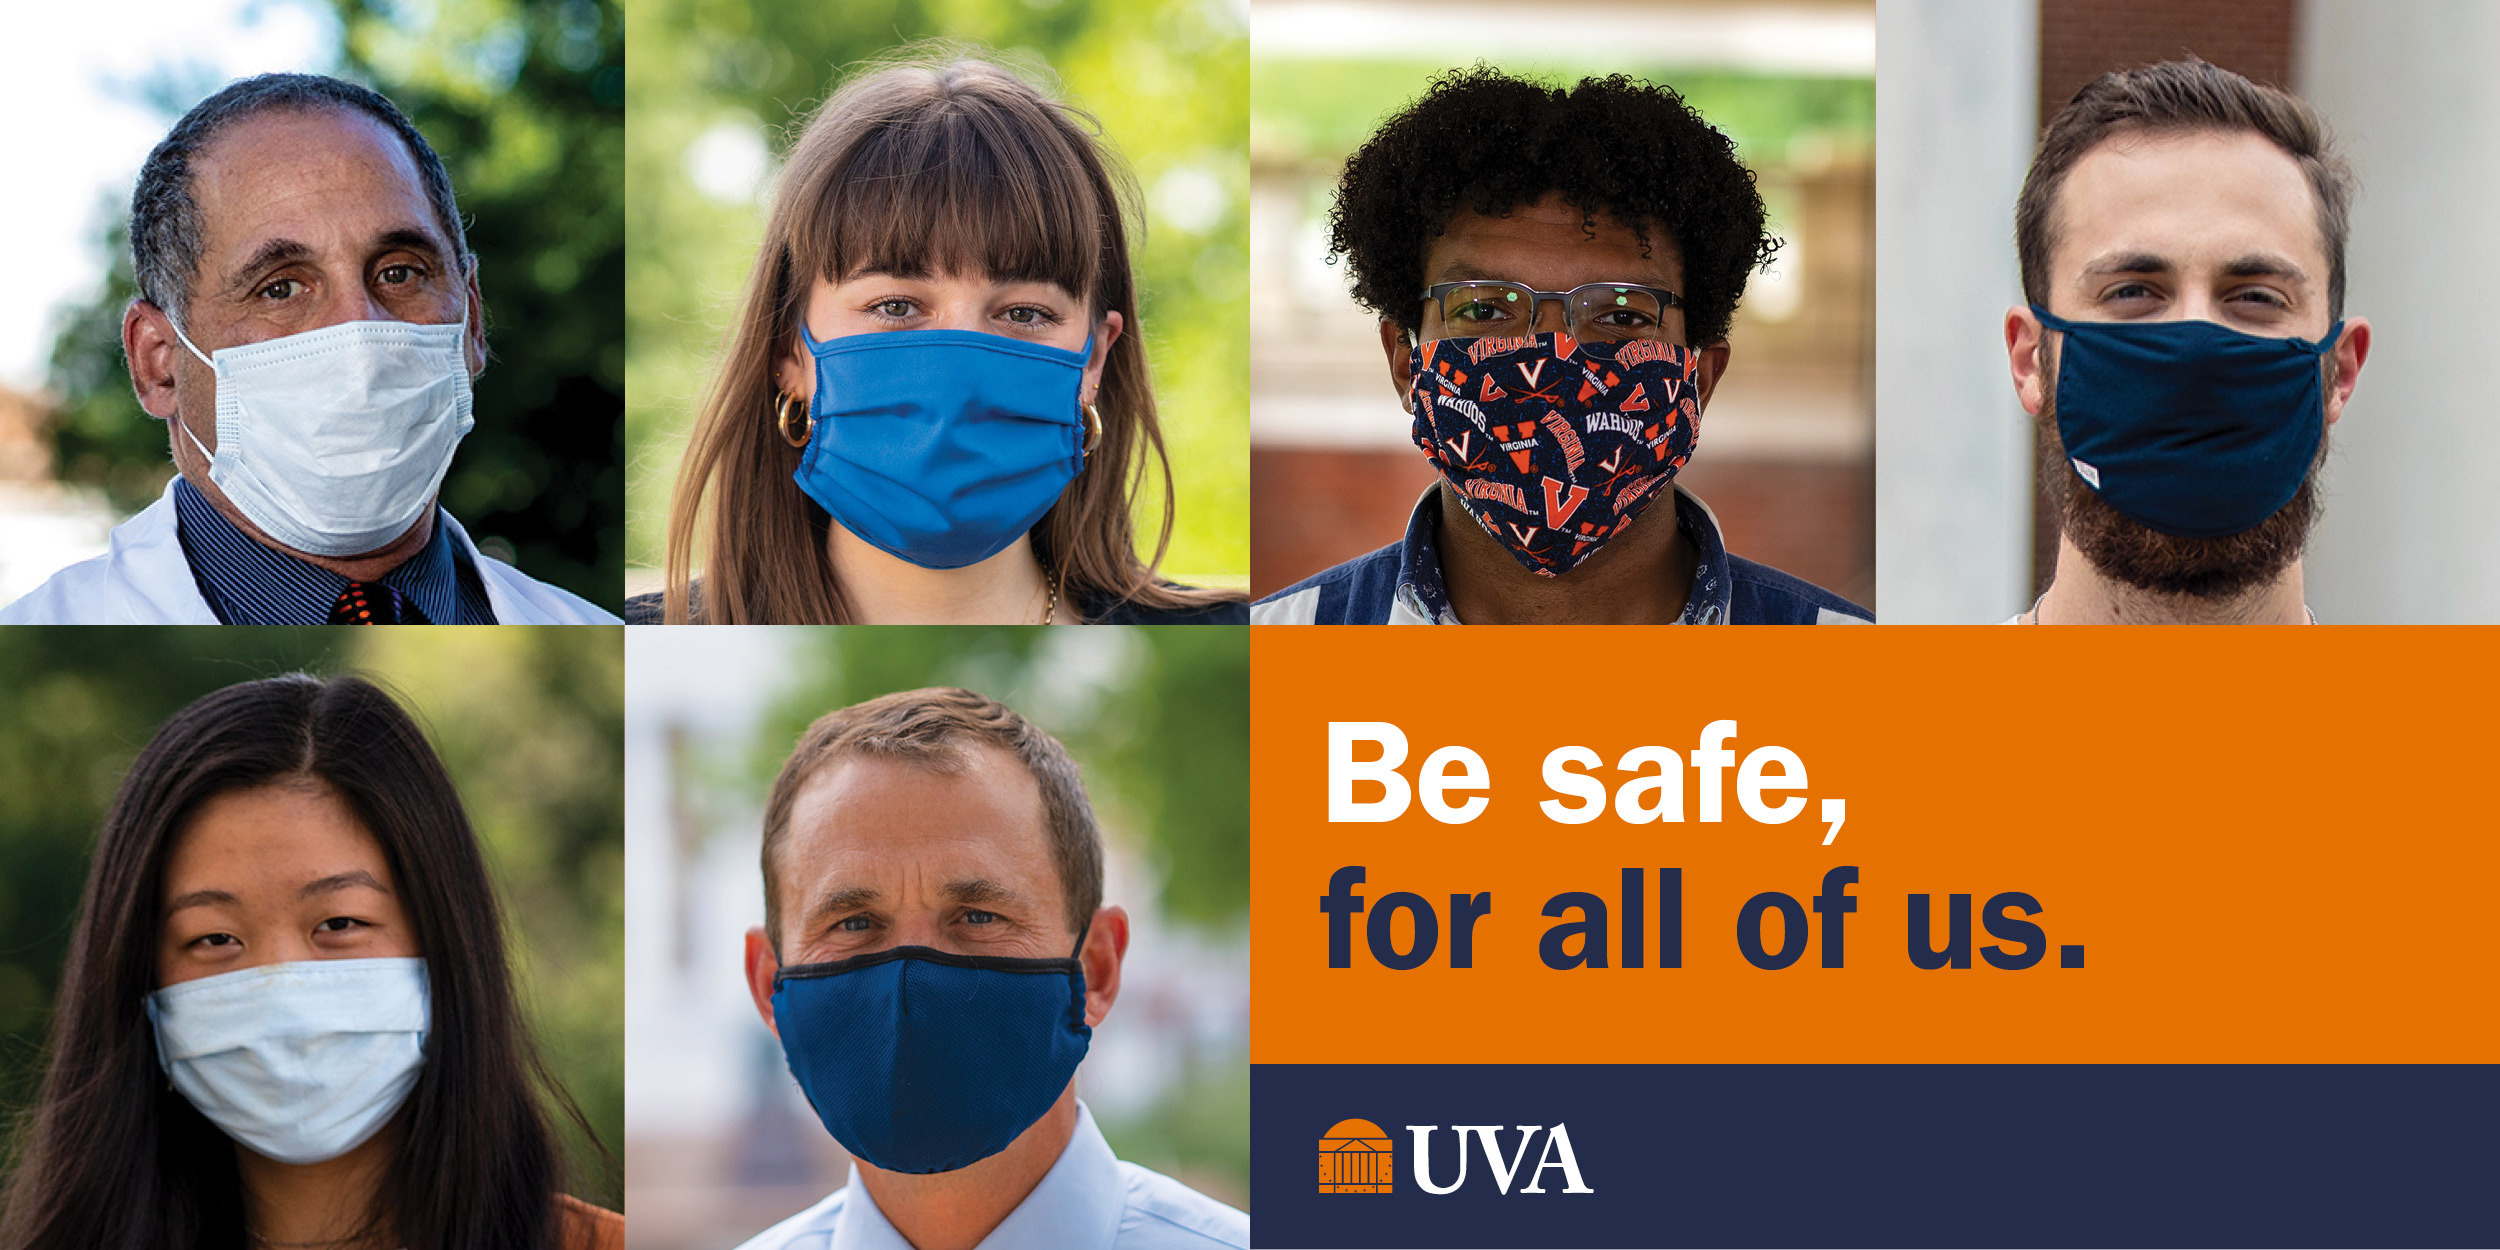 Be safe, for all of us. -UVA